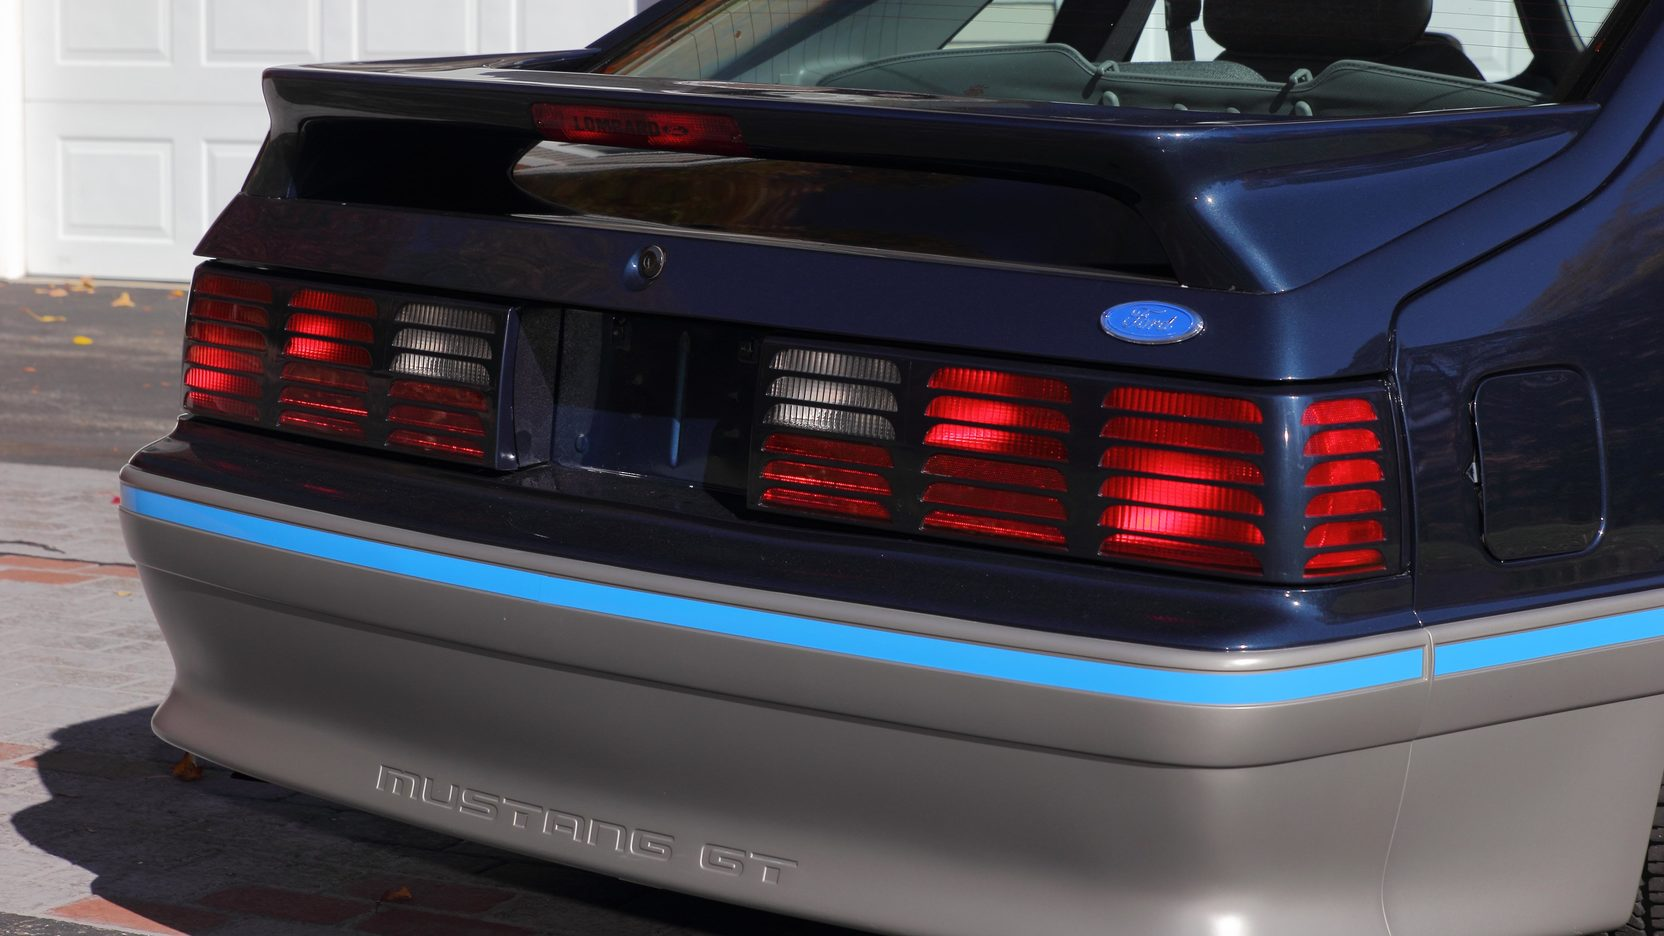 1988 Ford Mustang GT rear